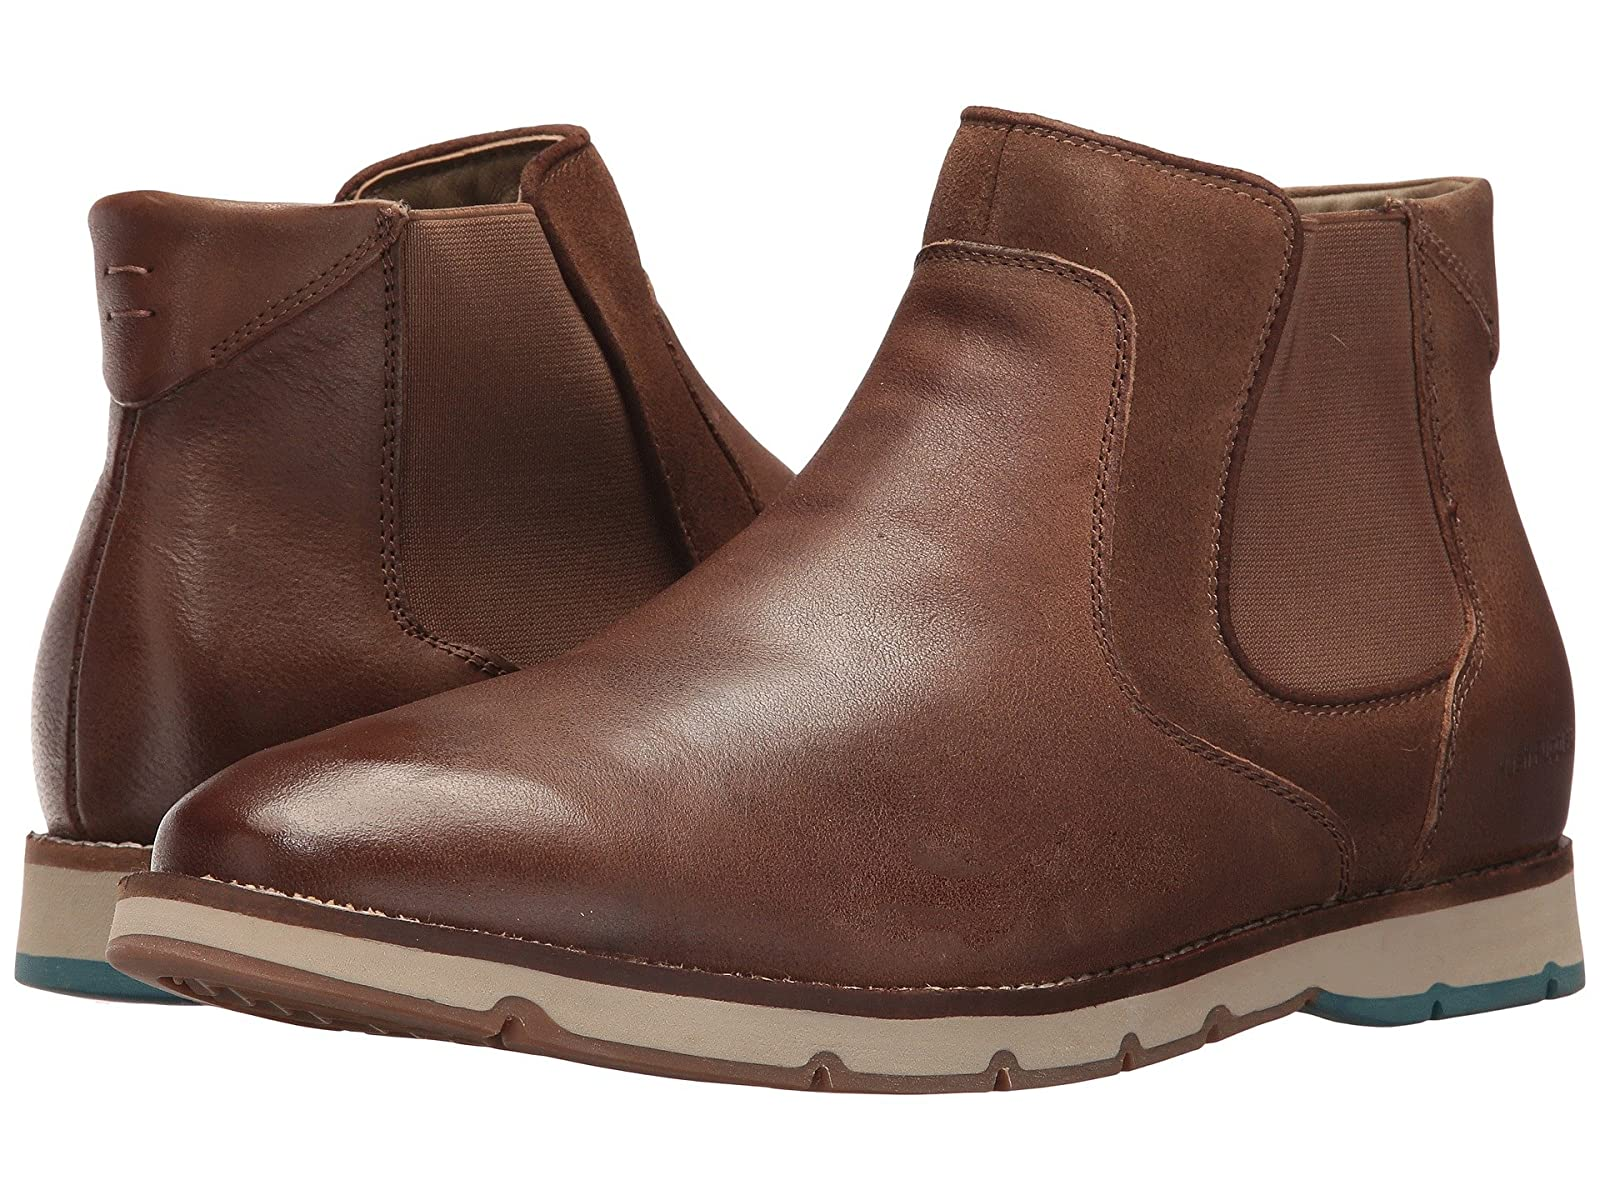 Hush Puppies Burwell HayesCheap and distinctive eye-catching shoes